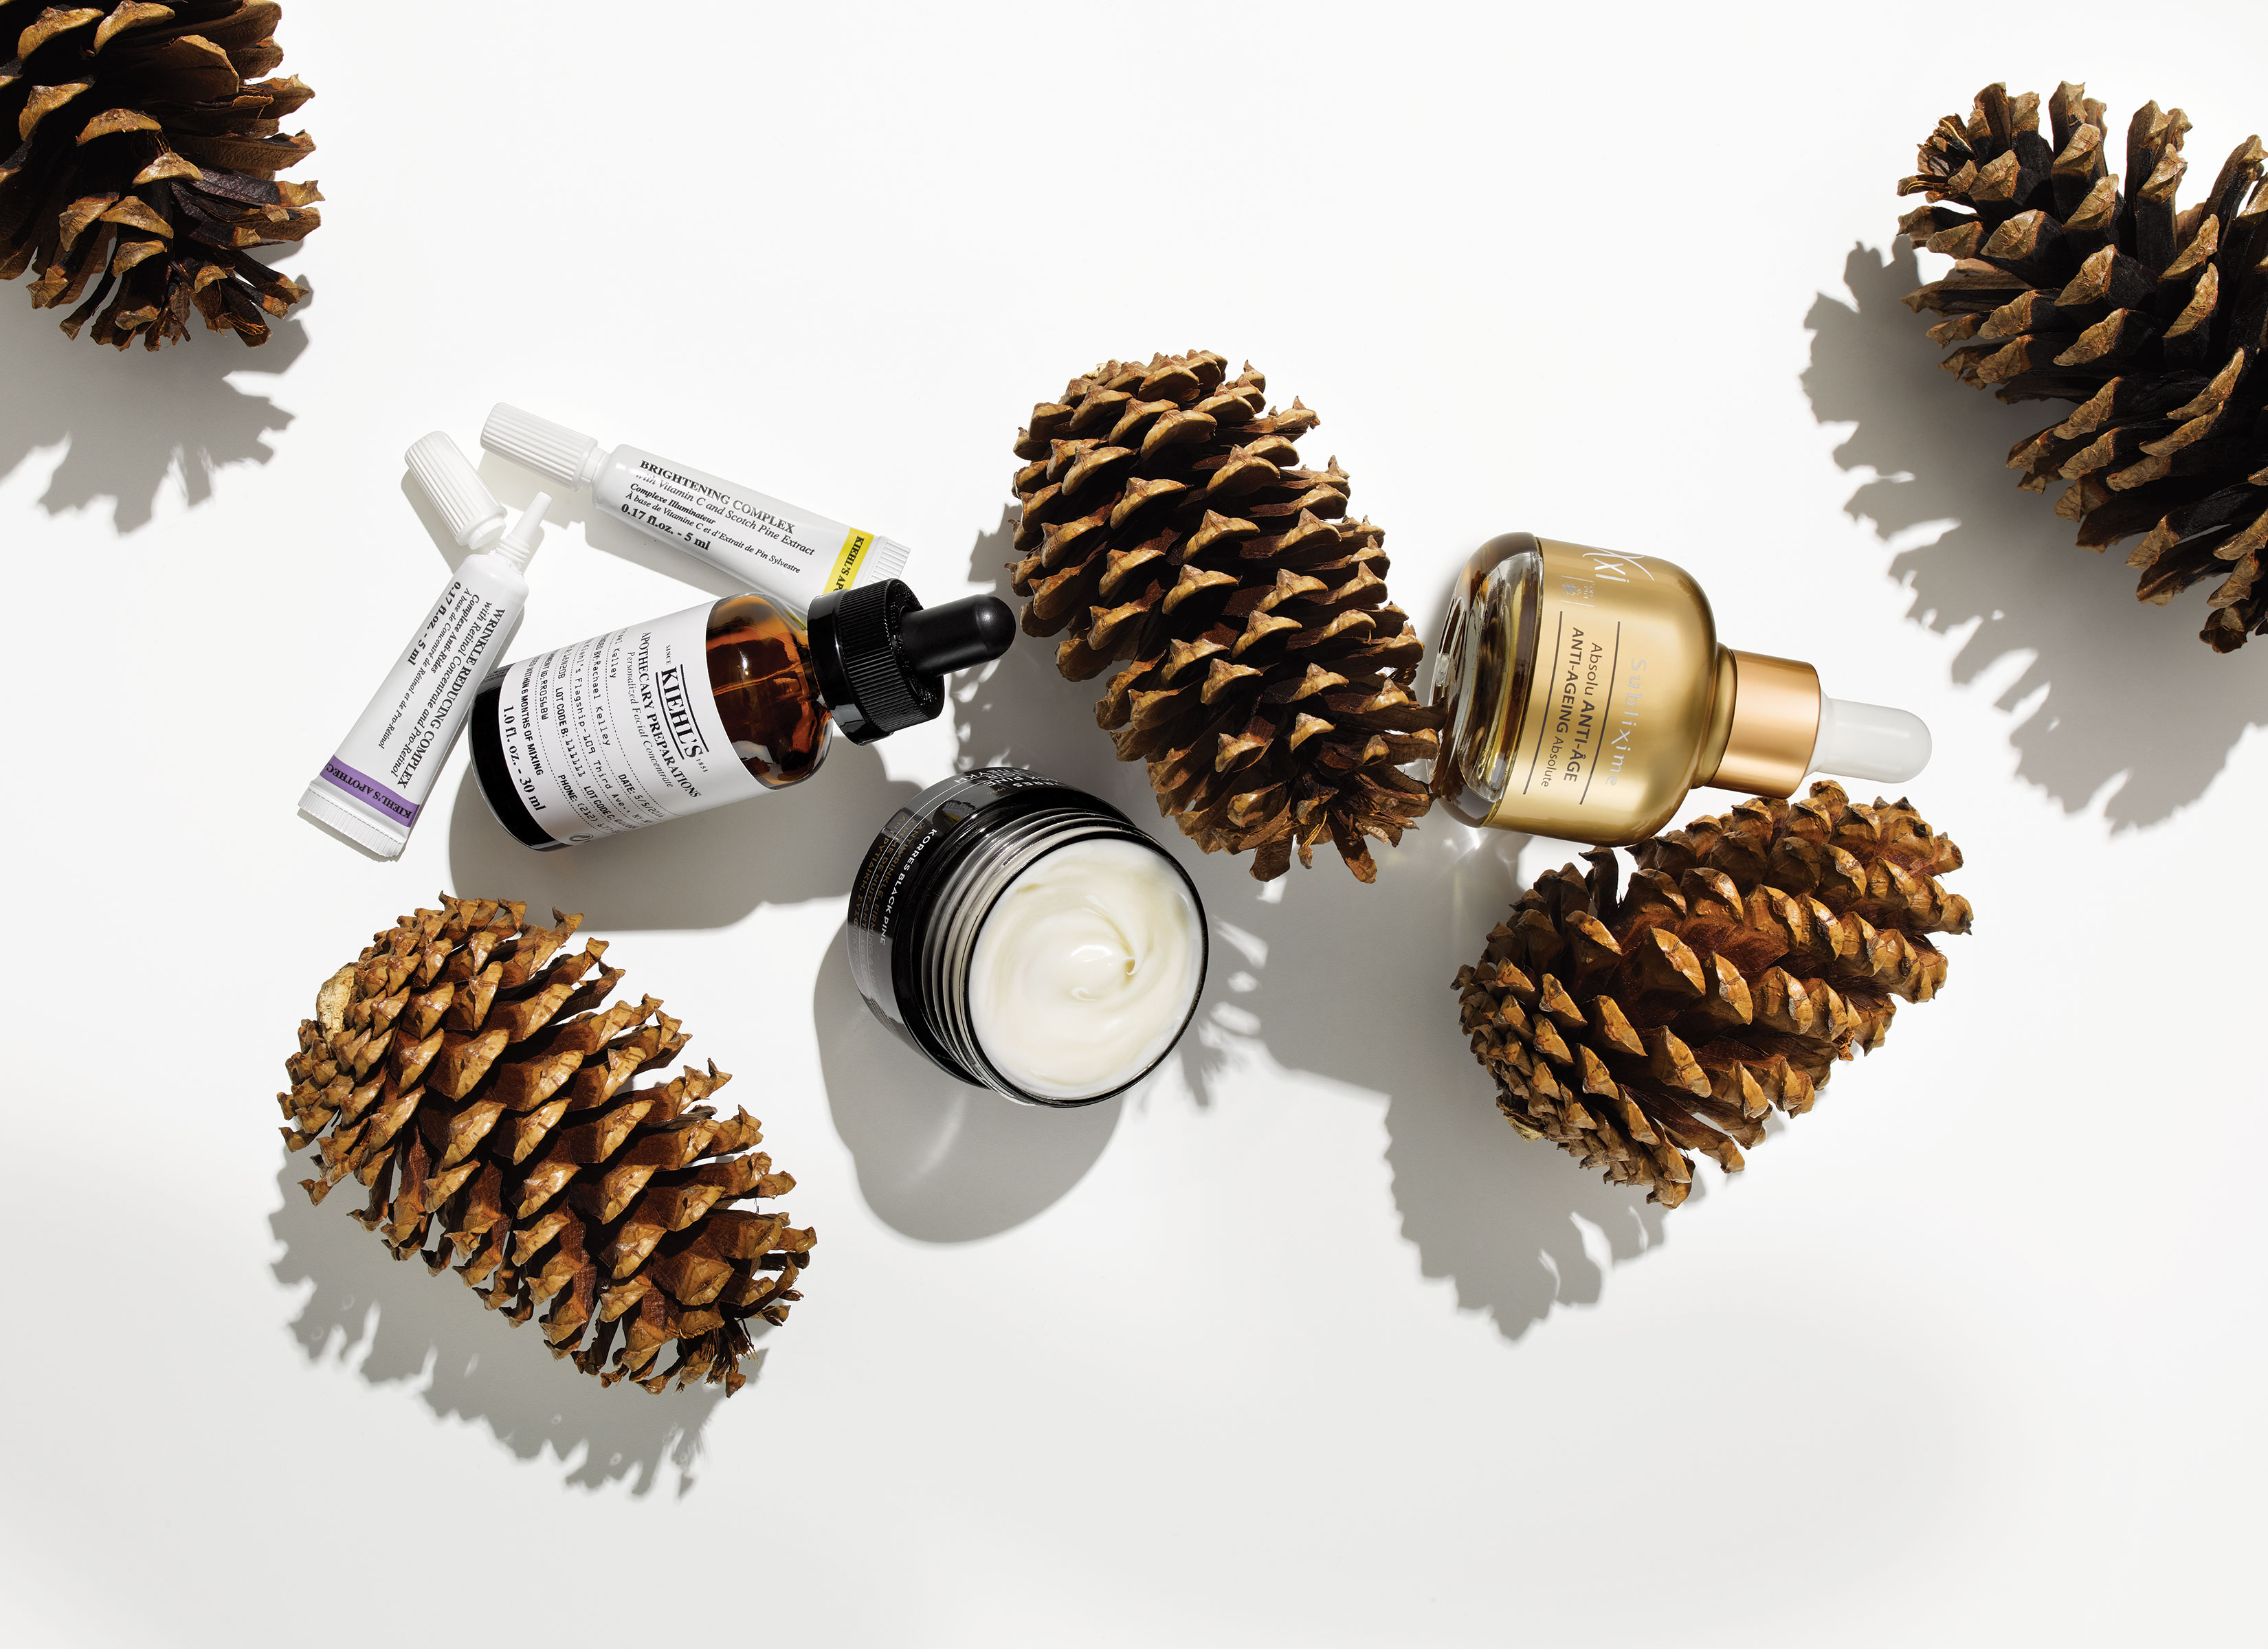 3 Anti-Aging Products Made With Pine for Radiant Skin